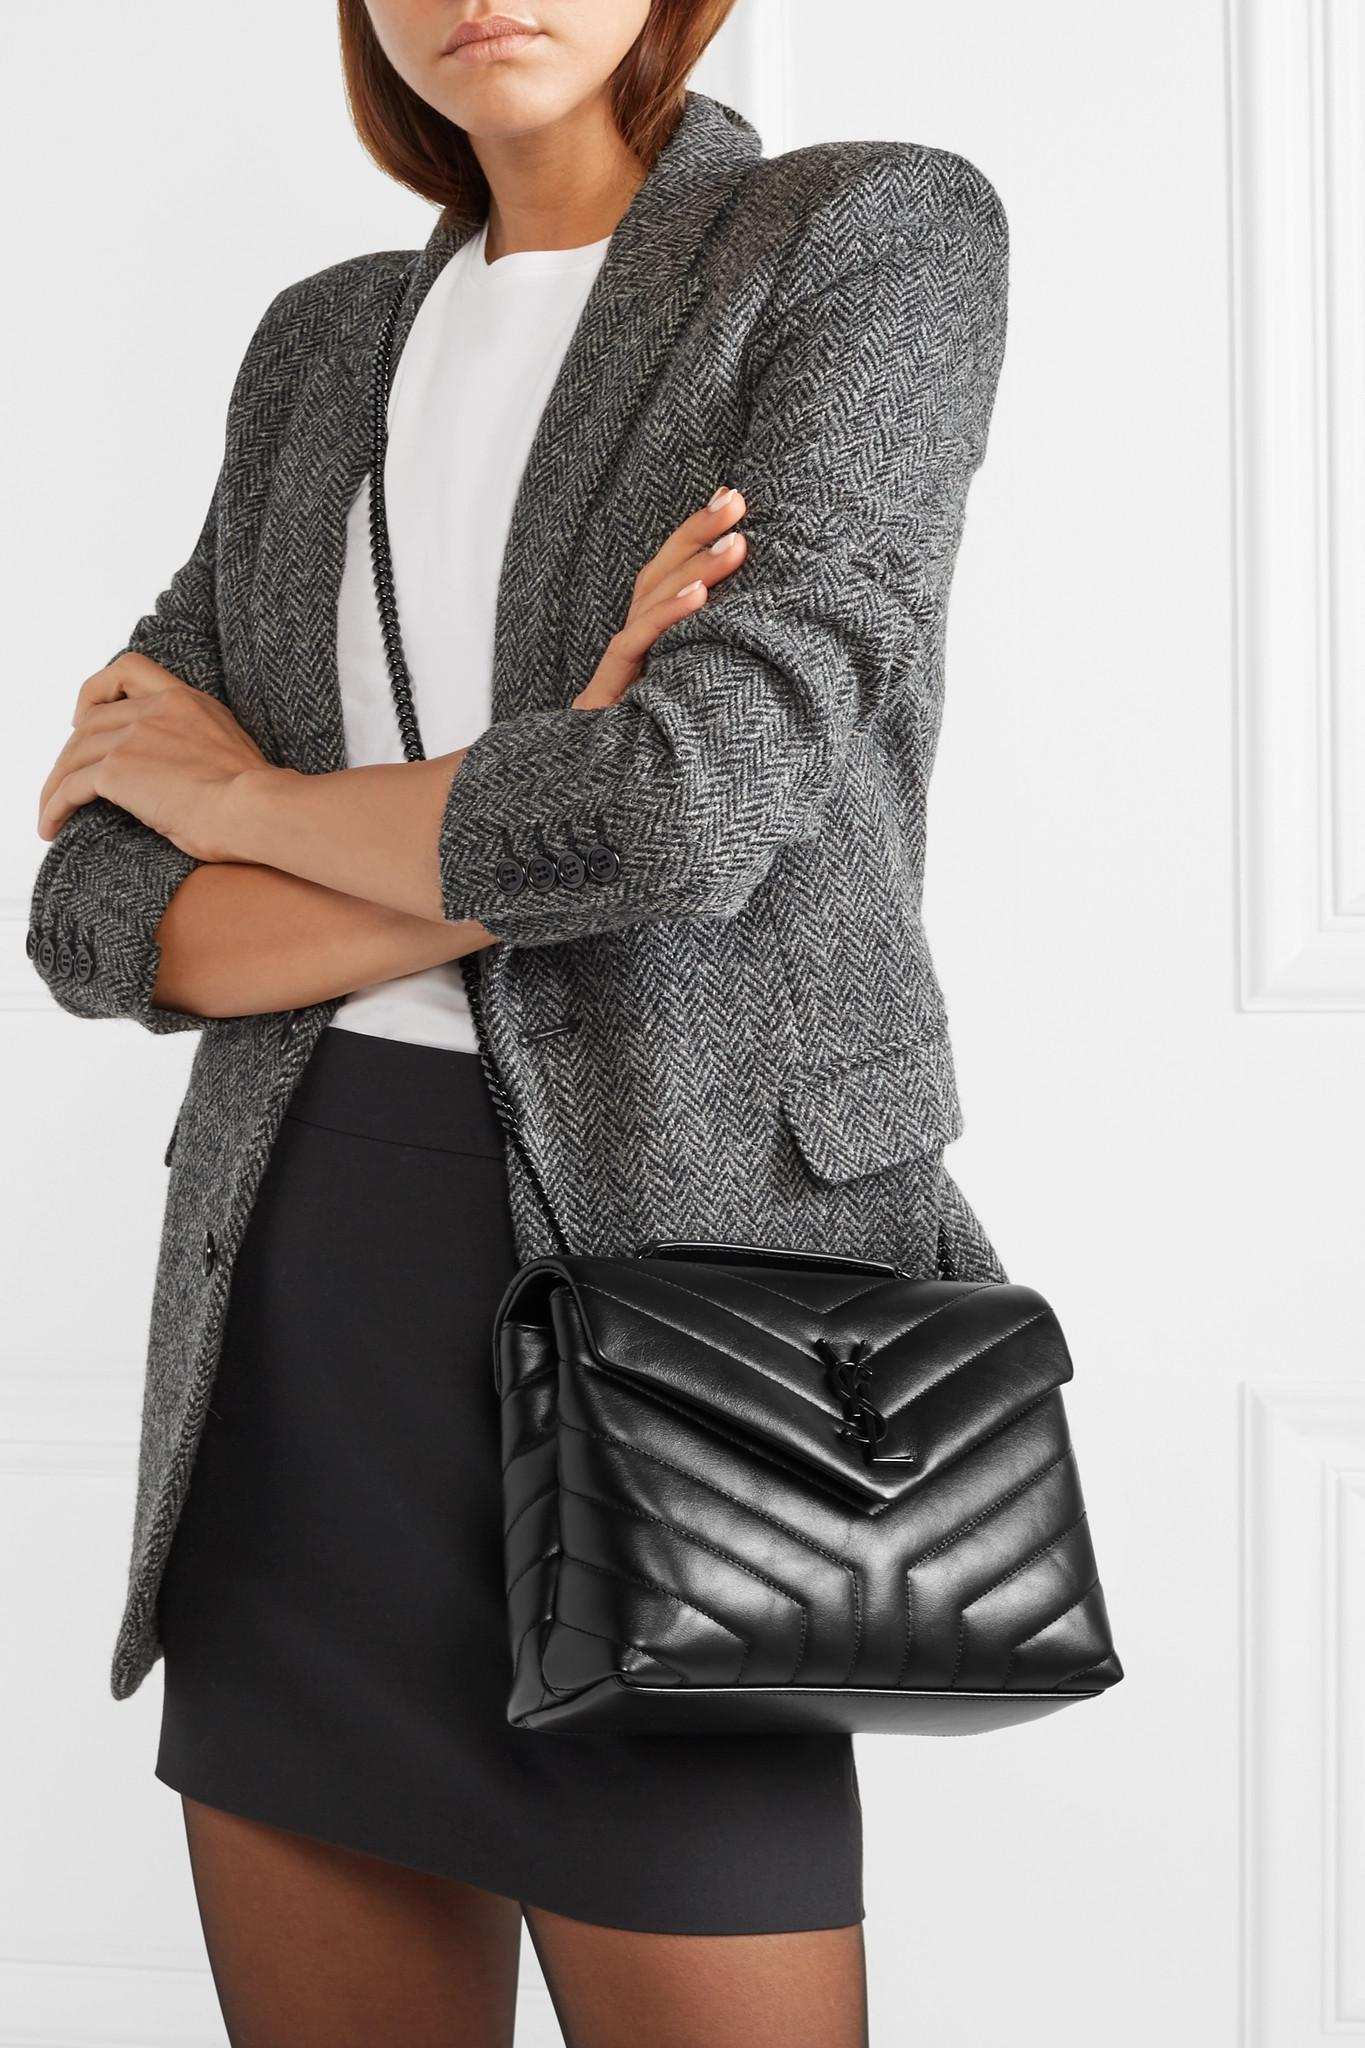 967a7a04ad9a Saint Laurent - Black Loulou Small Quilted Leather Shoulder Bag - Lyst.  View fullscreen